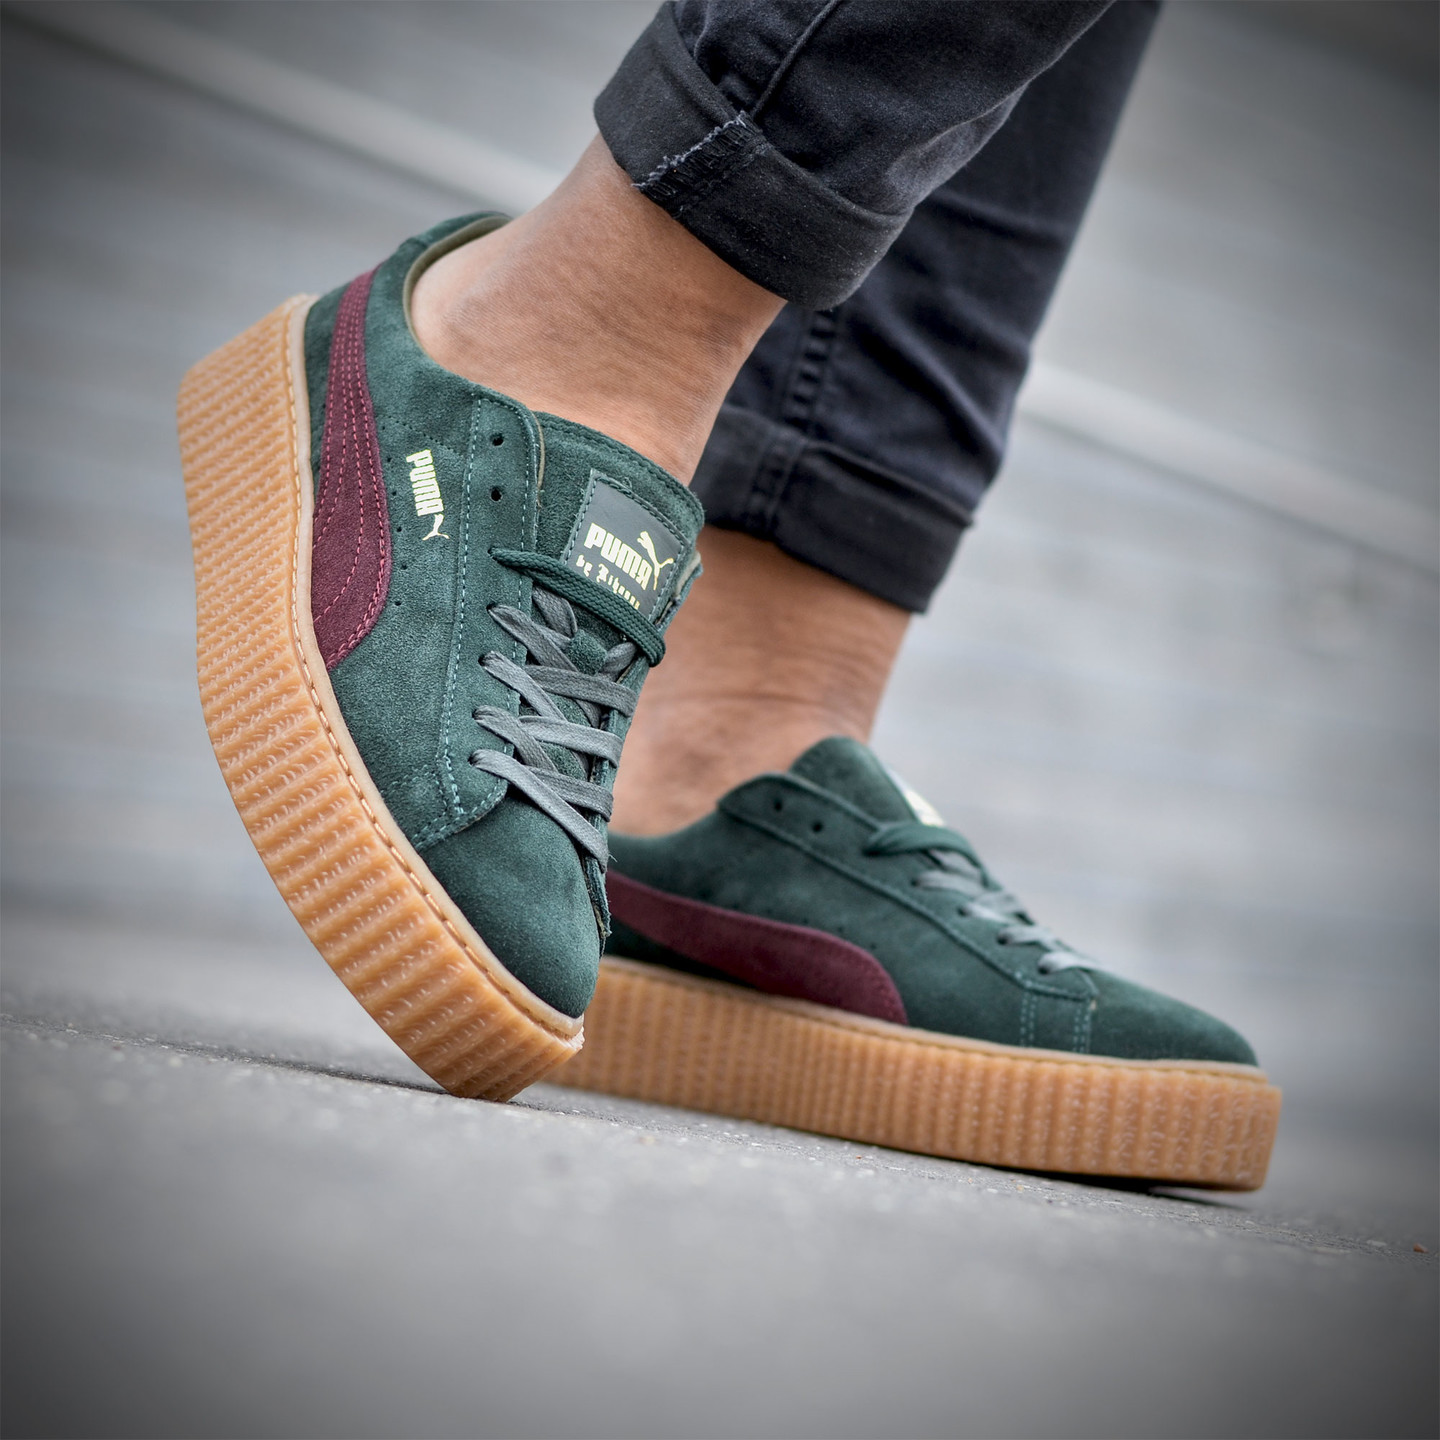 Puma Rihanna Suede Creepers Olive Green / Bordeaux 361005-07-37